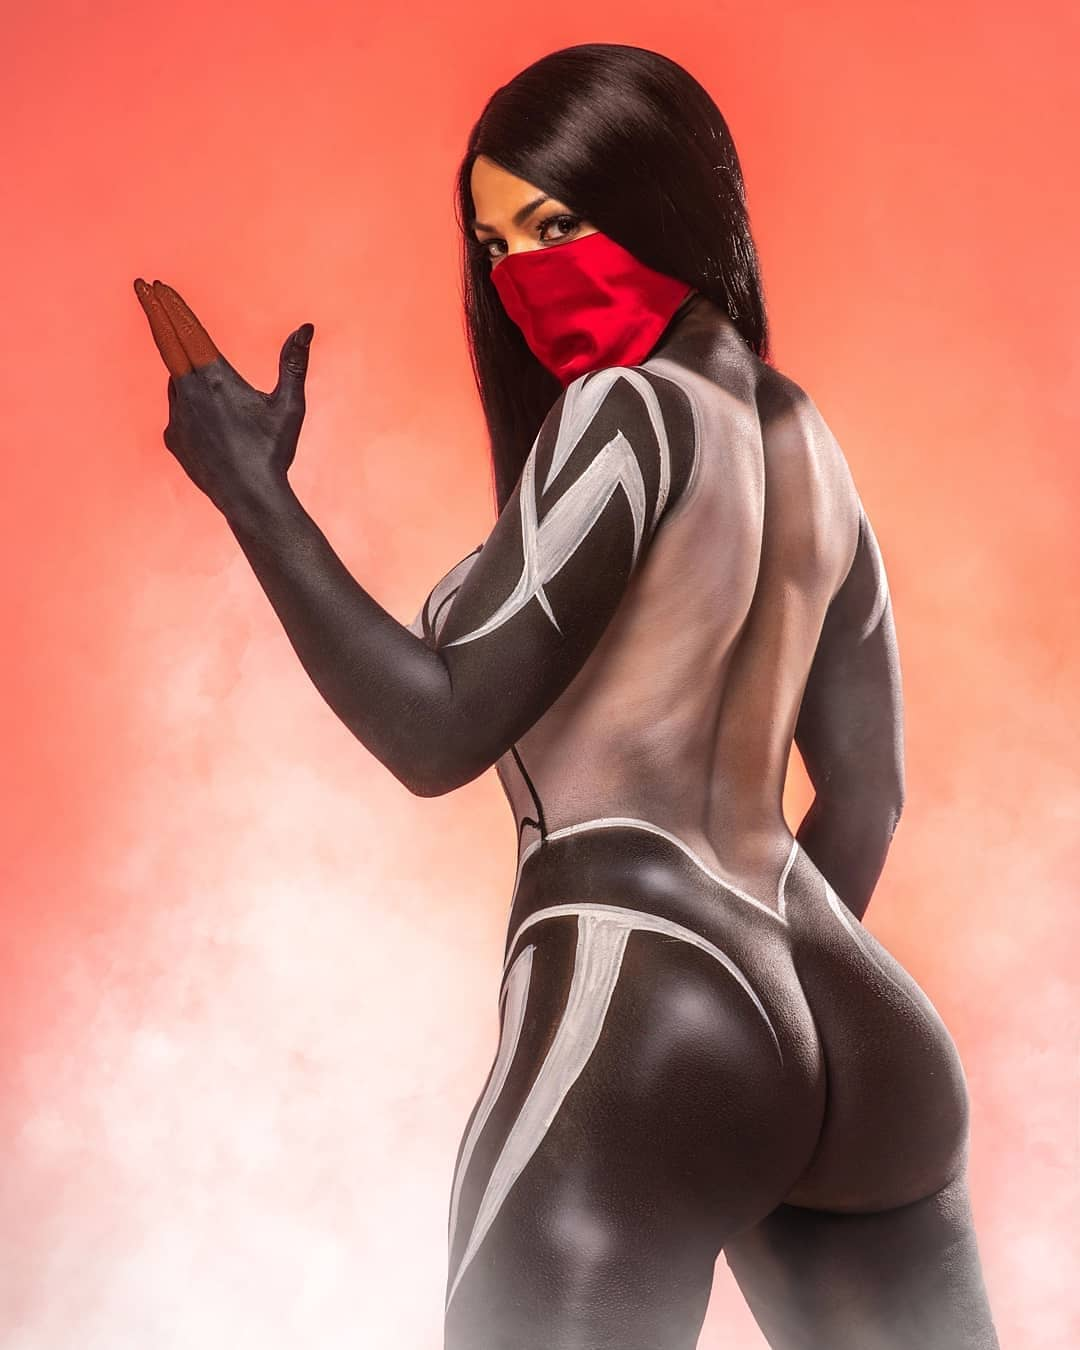 Silk spiderman cosplay janessaking_ photo by alxguzmanphotography